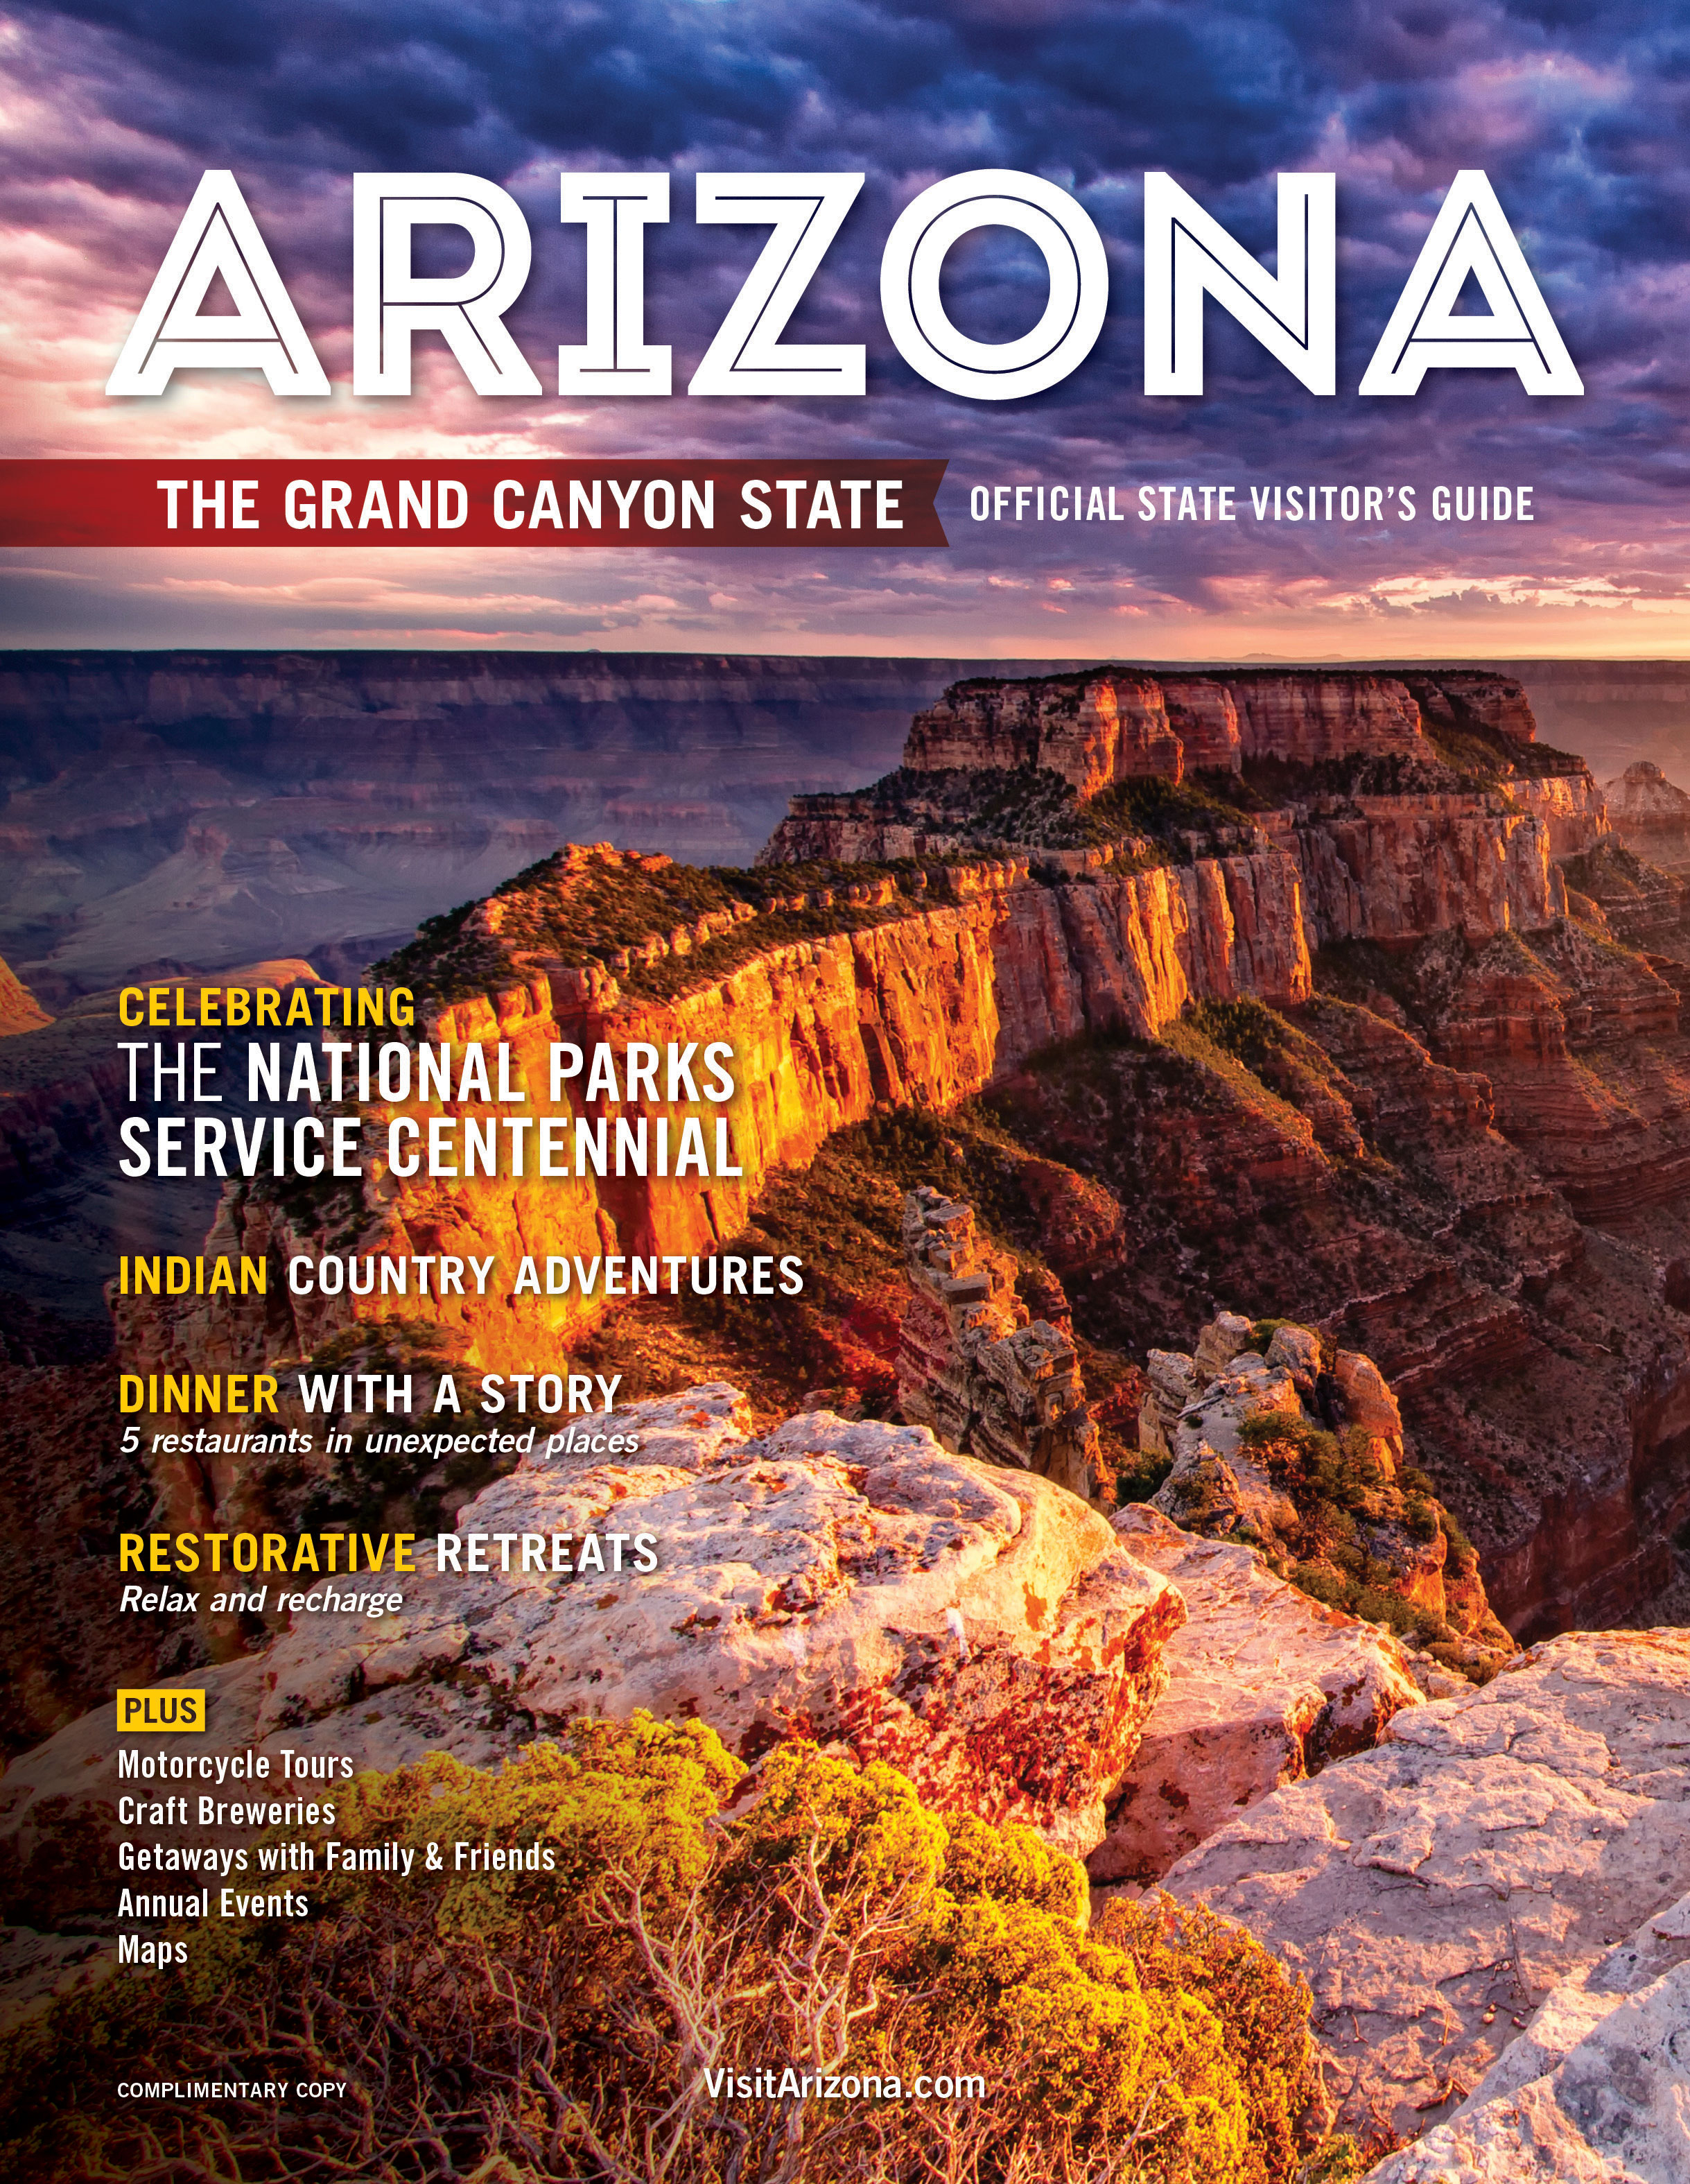 arizona office of tourism announces new 2016 travel guide | business